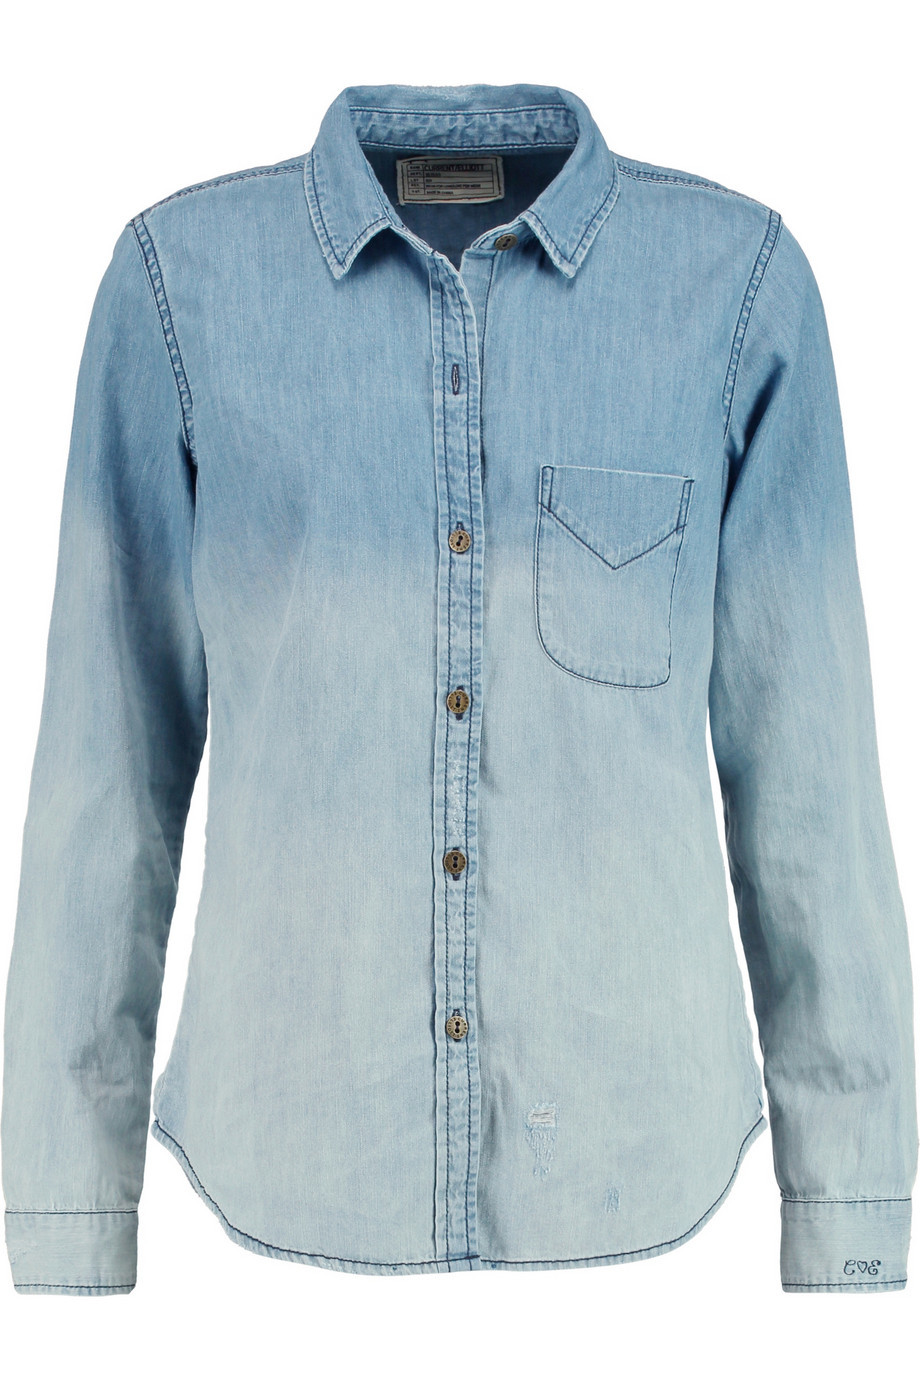 The Slim Boy Ombré Chambray Shirt Sky Blue - neckline: shirt collar/peter pan/zip with opening; pattern: plain; style: shirt; predominant colour: denim; occasions: casual; length: standard; fibres: cotton - 100%; fit: body skimming; sleeve length: long sleeve; sleeve style: standard; texture group: denim; pattern type: fabric; season: s/s 2016; wardrobe: basic